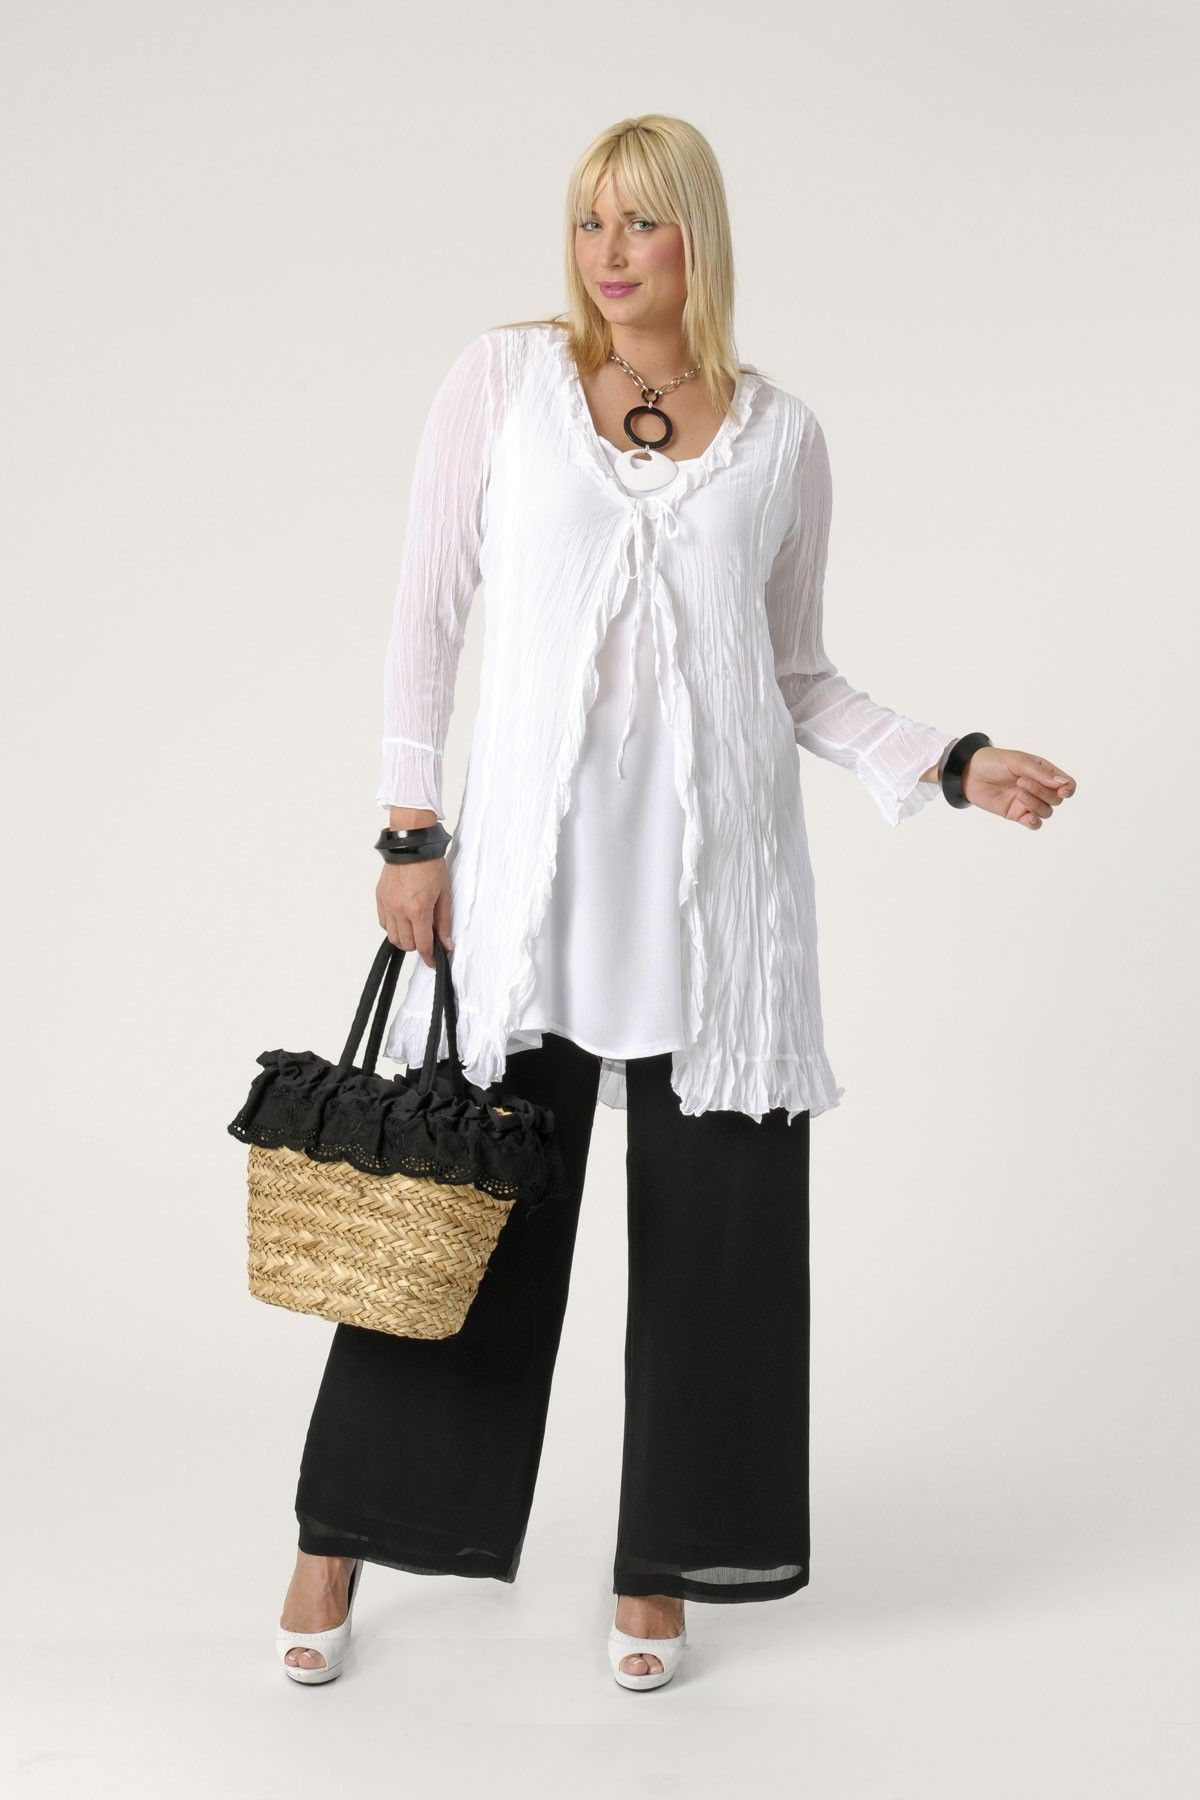 Trendy Womens Clothing Online: Plus Size Women's Clothes Spring Summer 2012